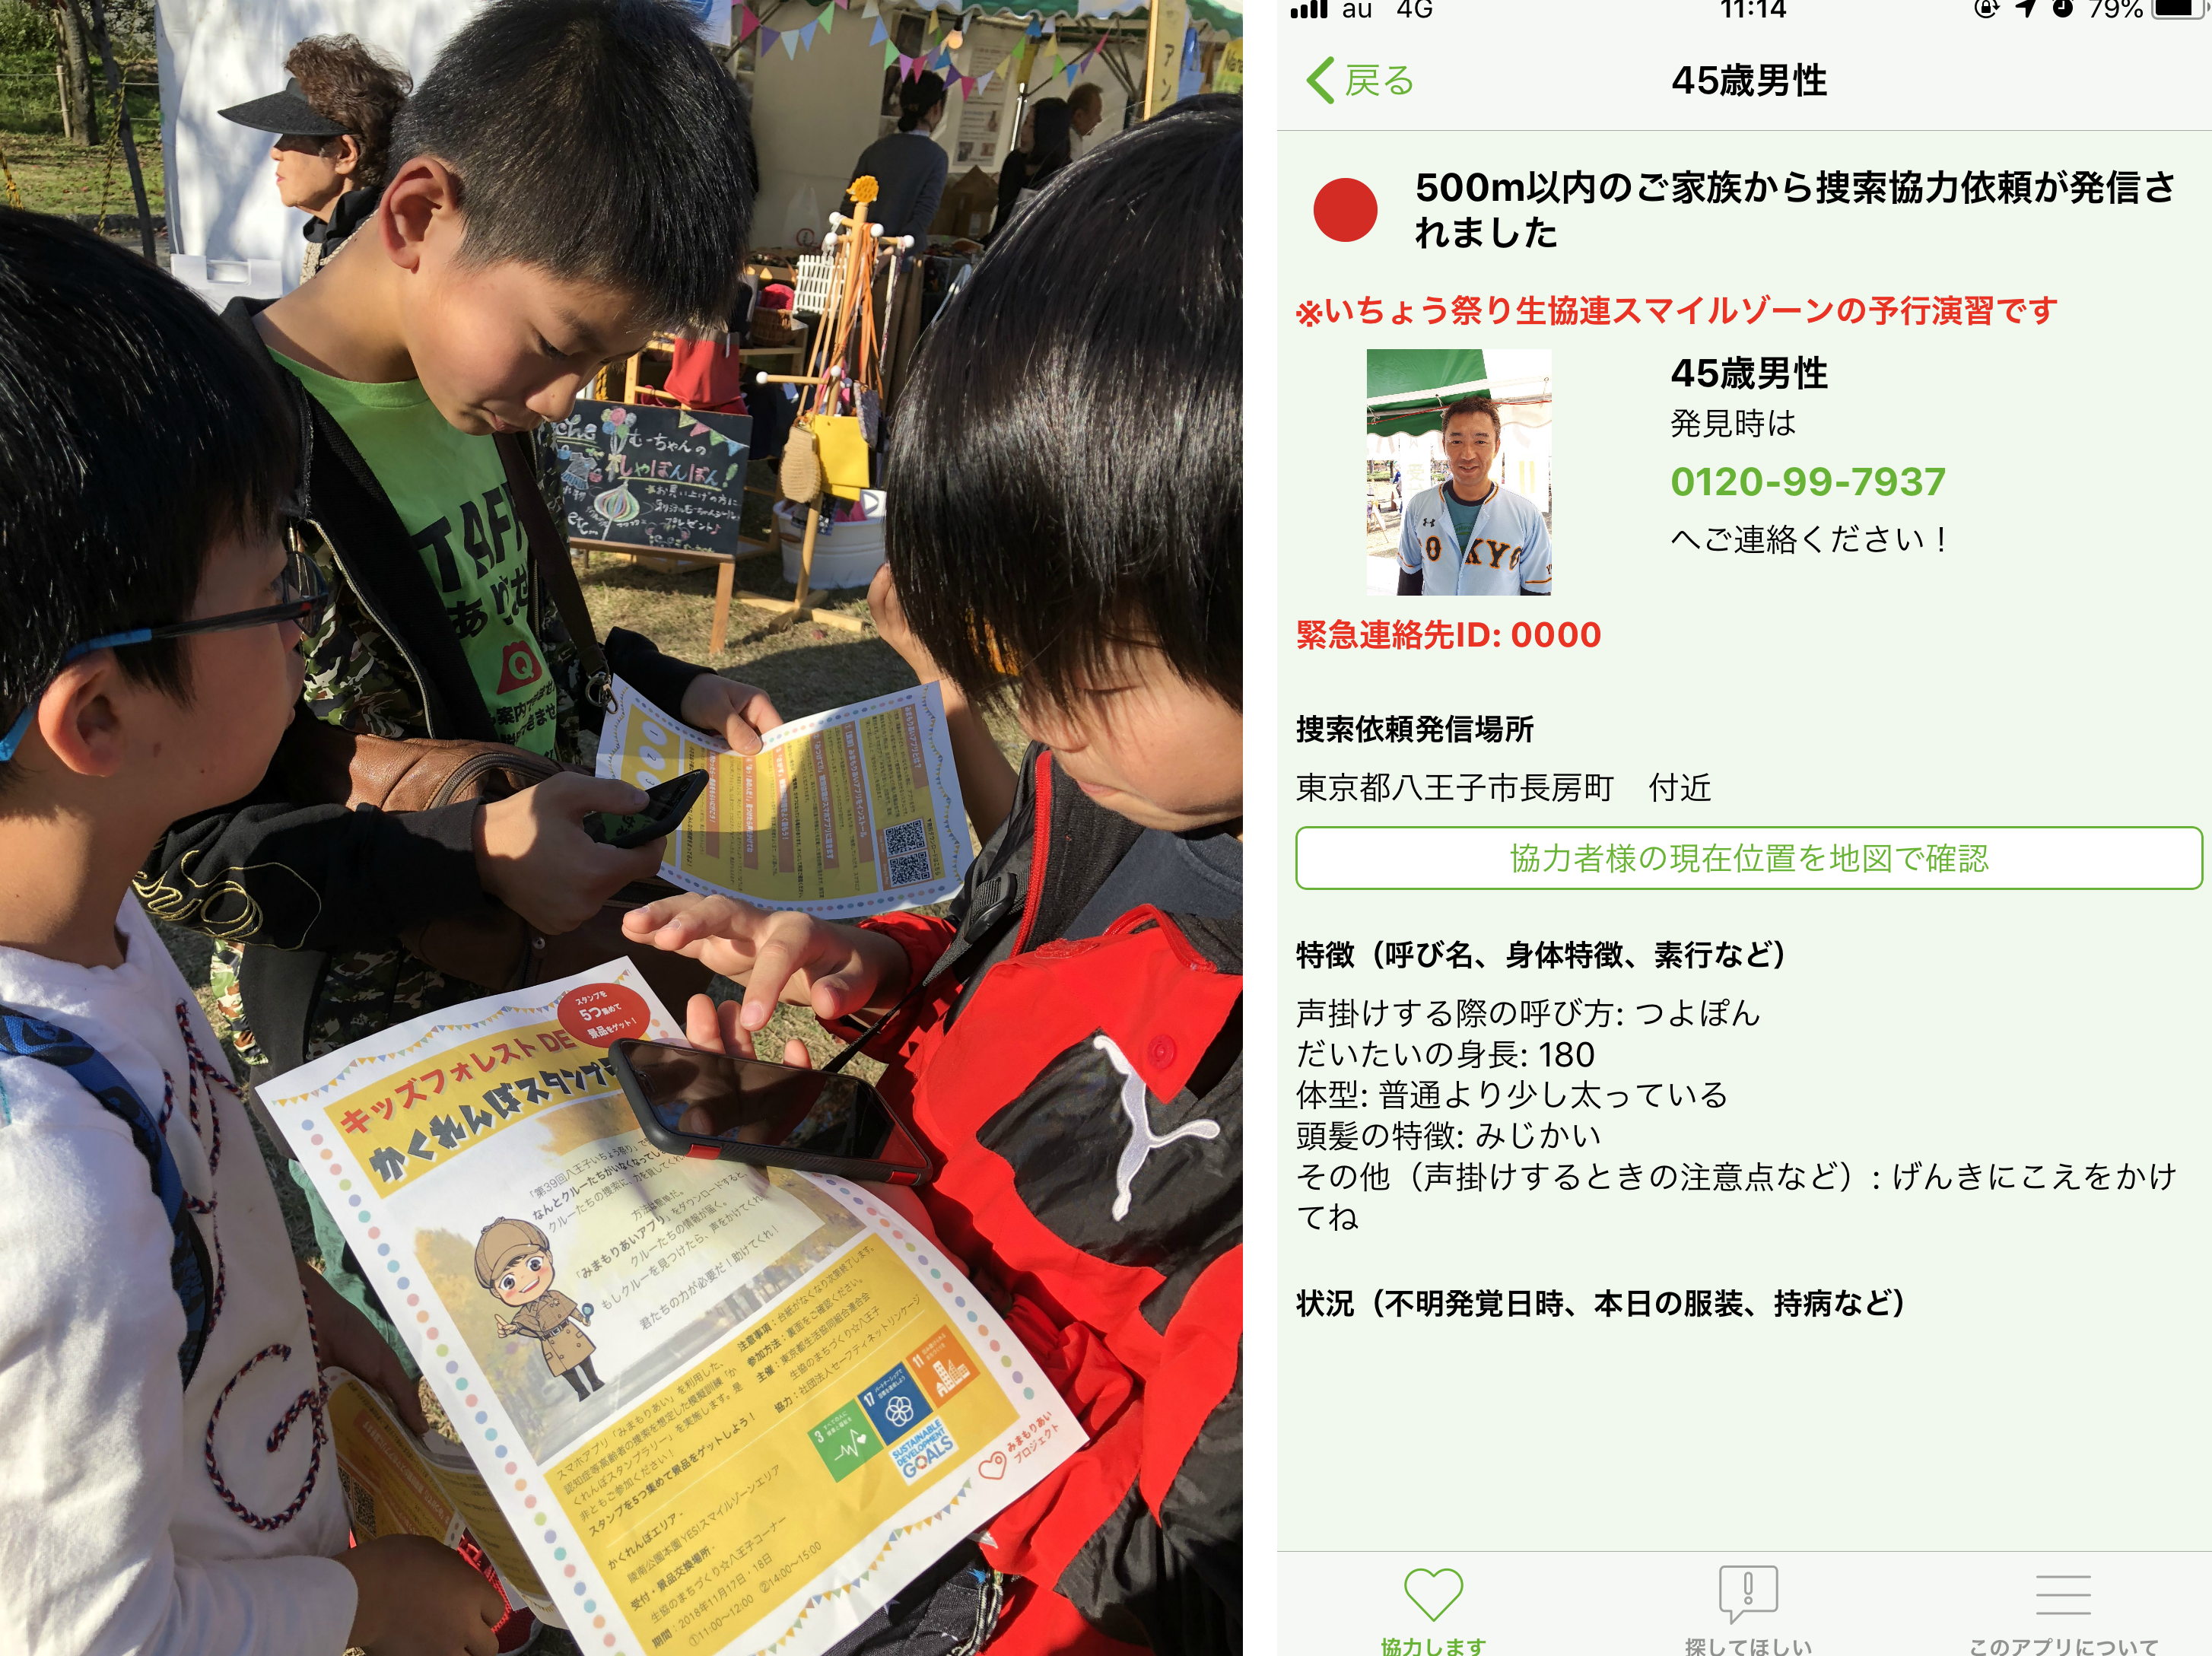 Hide-And-Seek Game using a smartphone app at The 39th Hachioji Ginkgo Festival